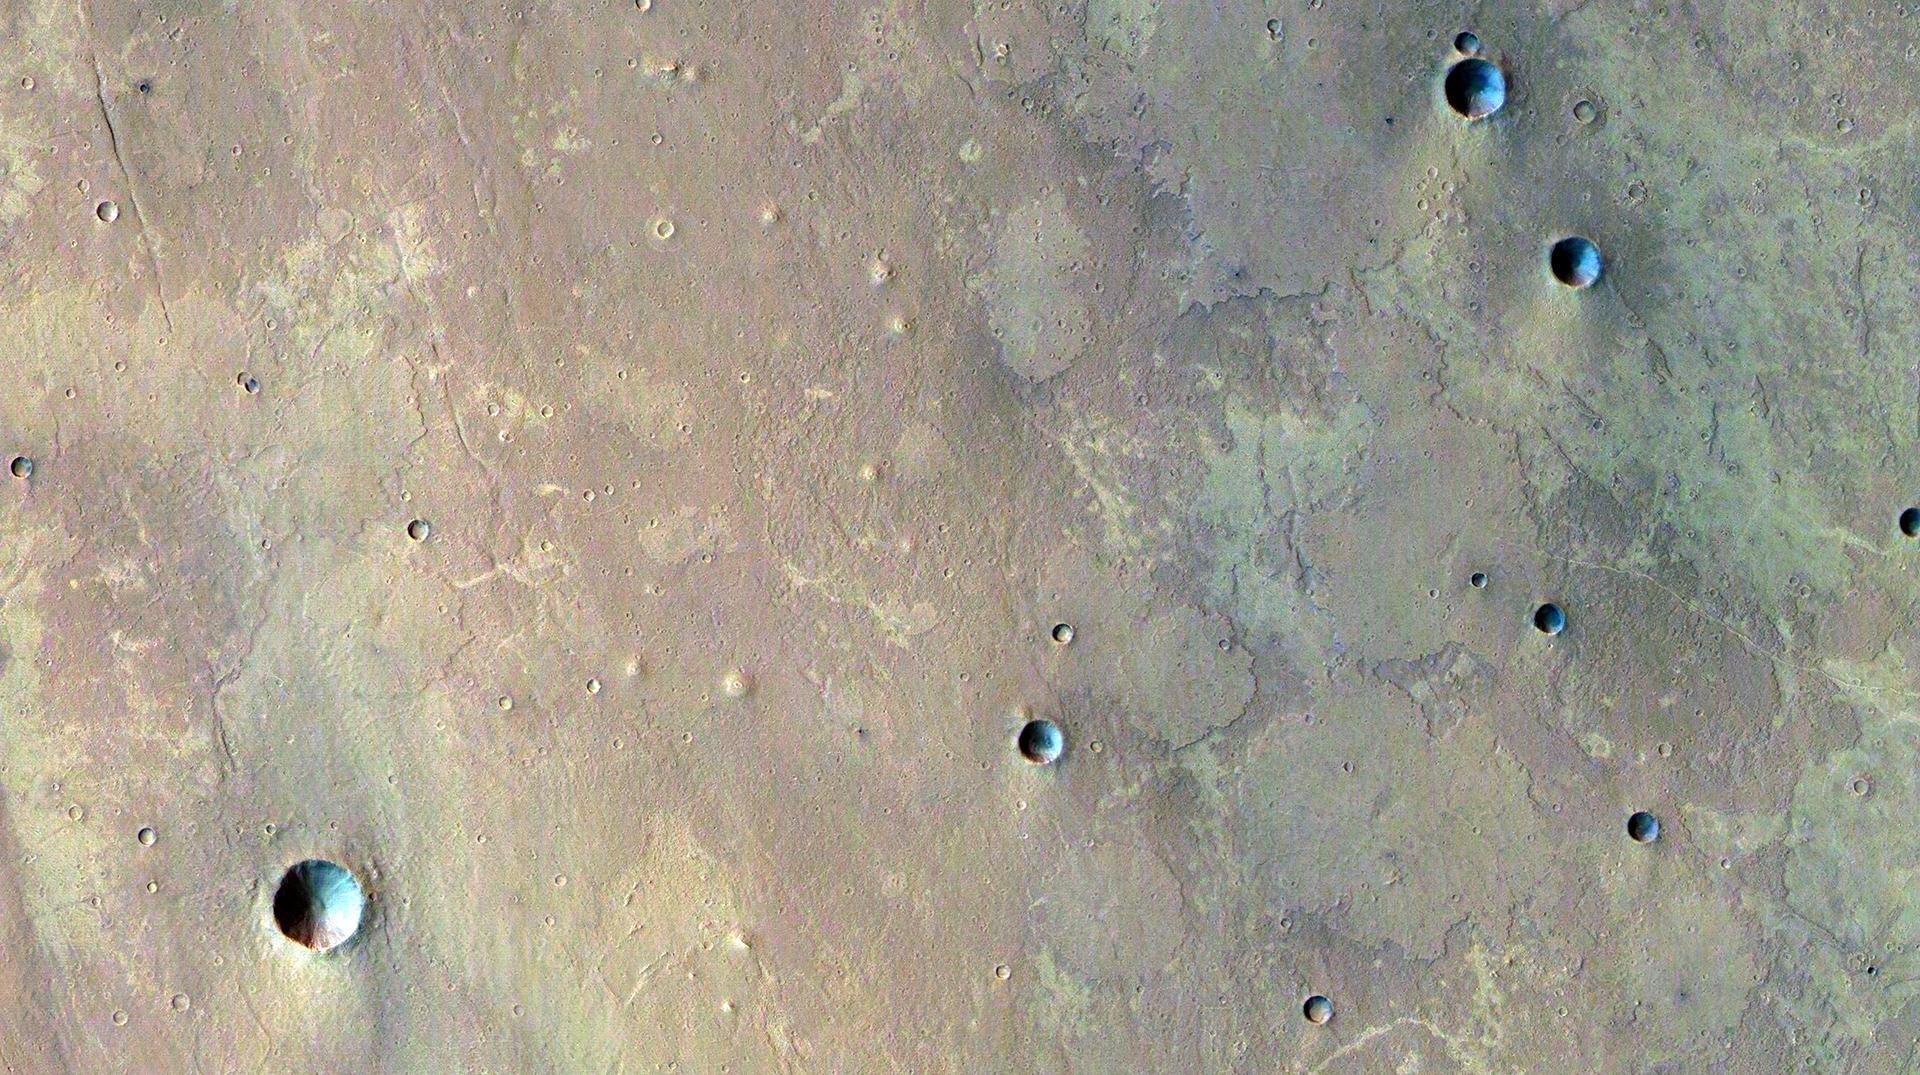 Mud volcanoes on Mars?